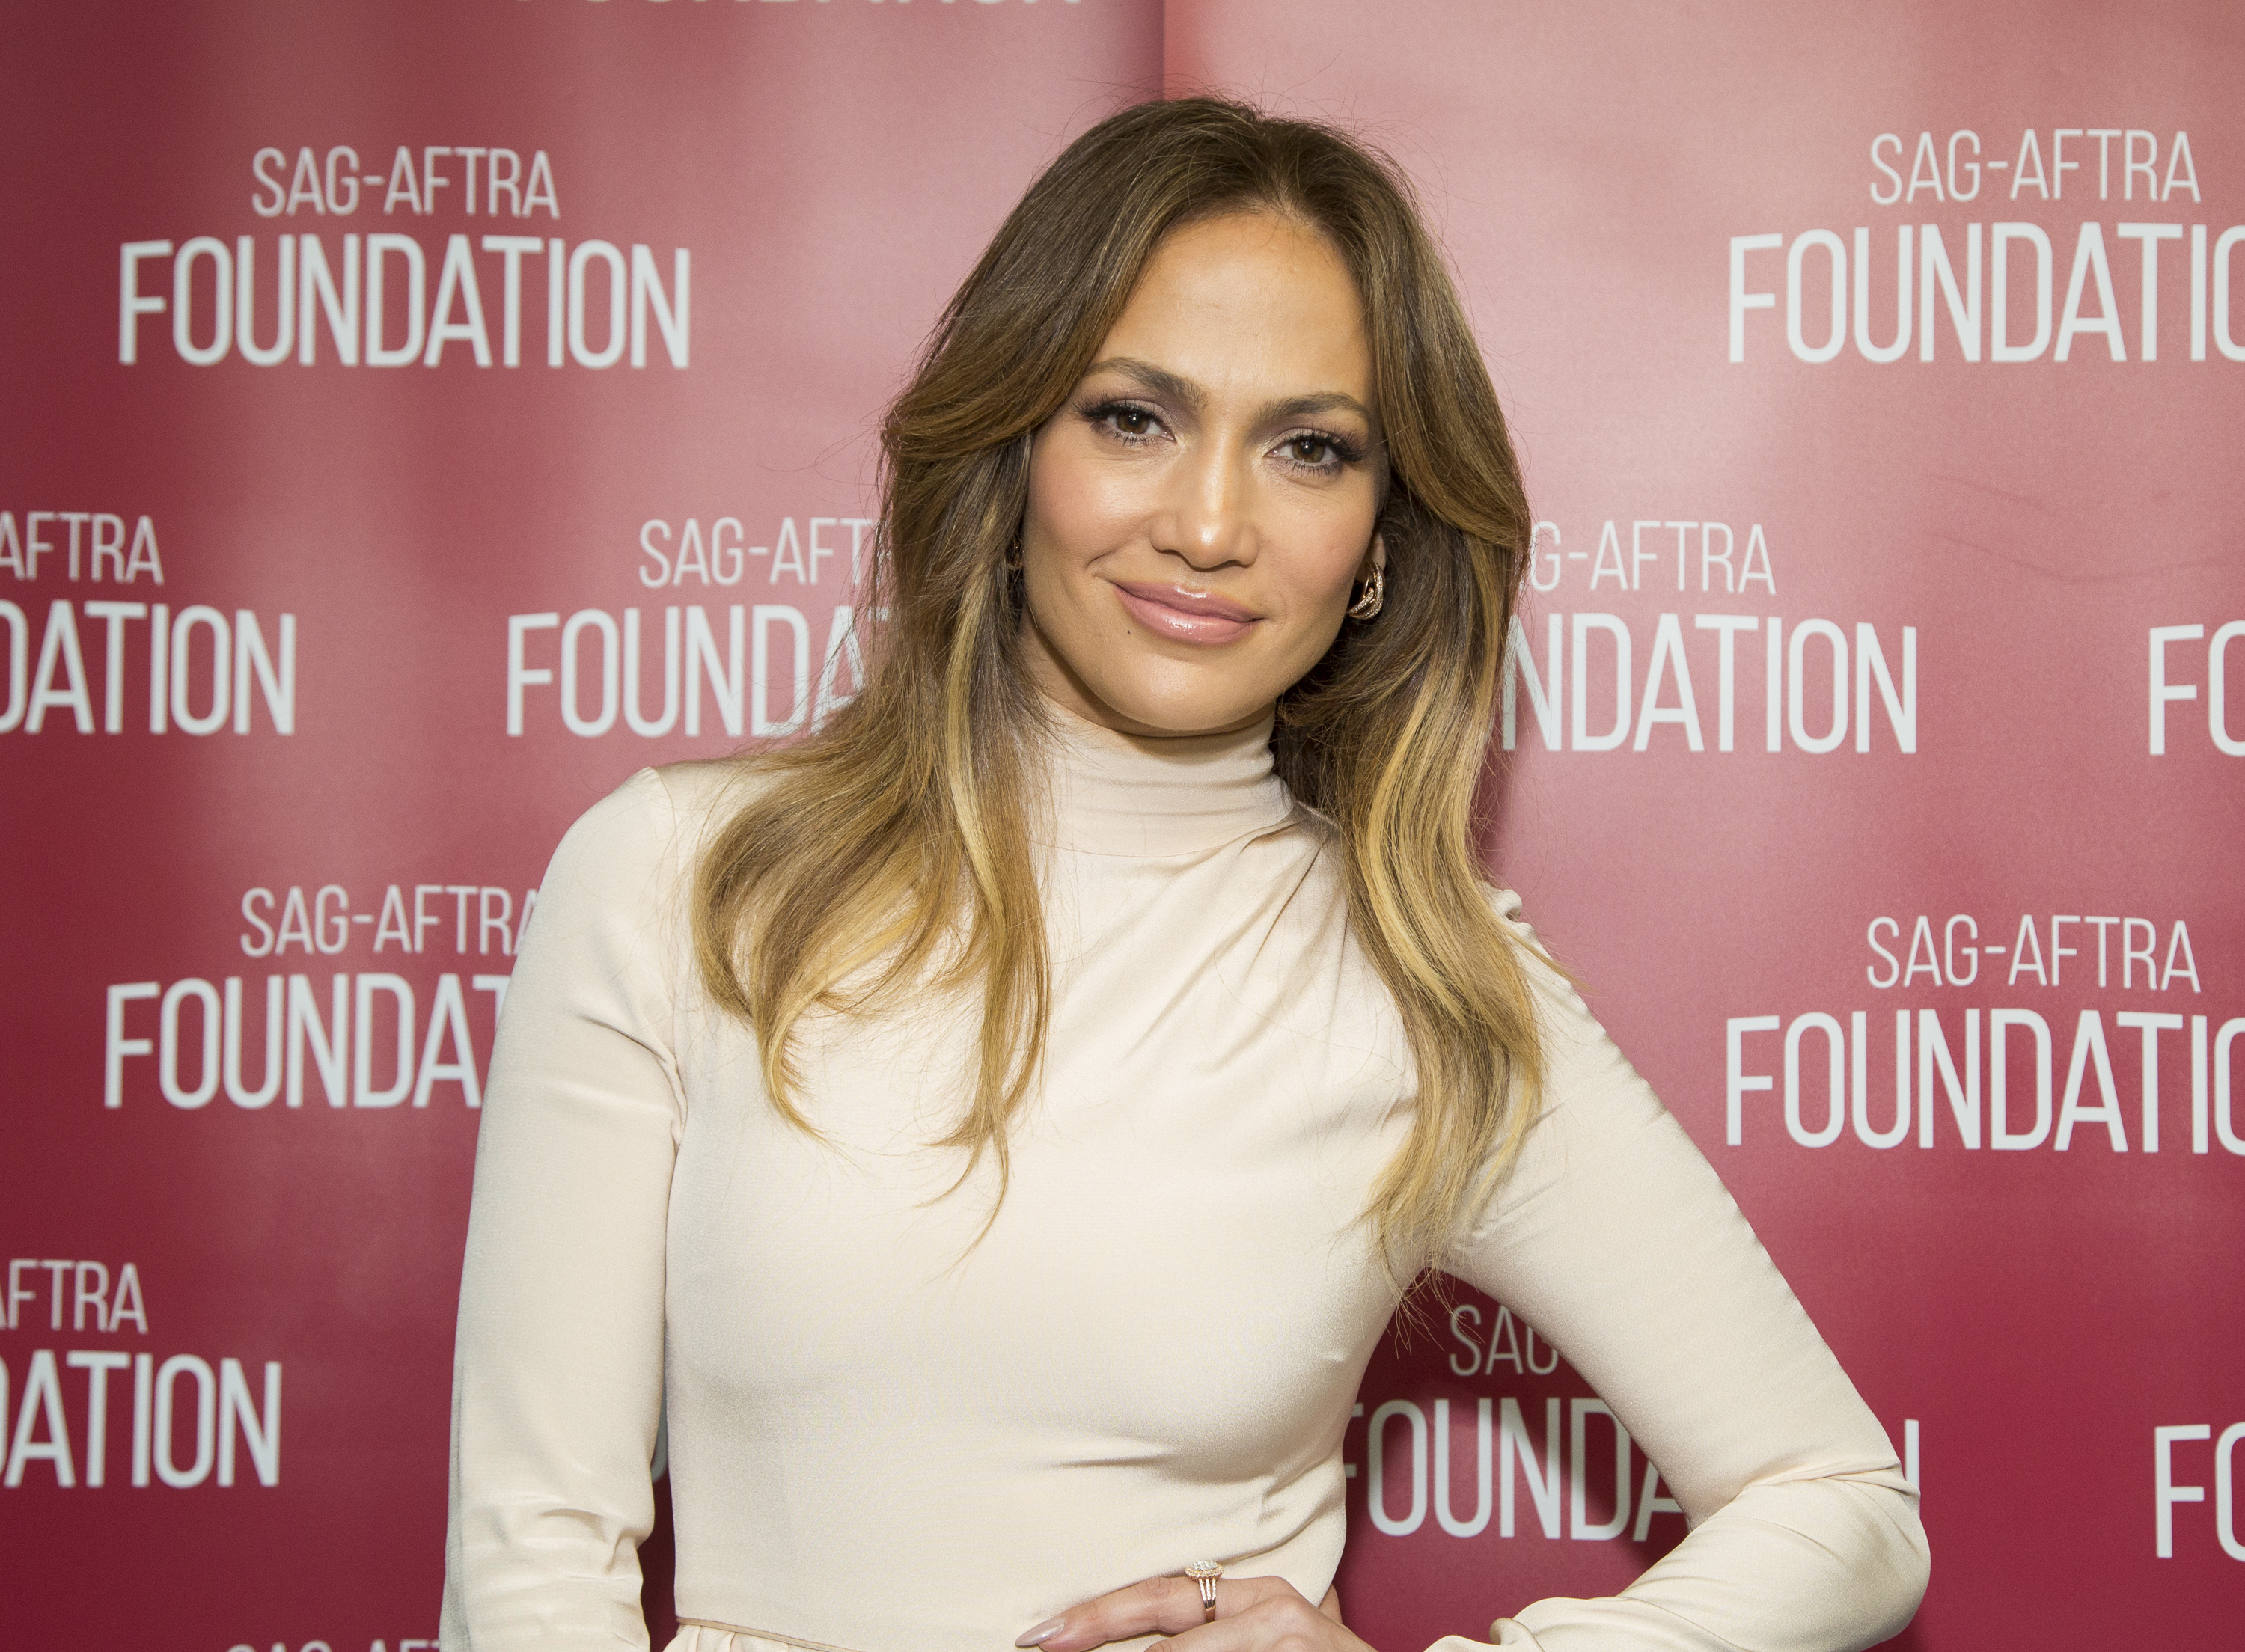 Actress Jennifer Lopez attends SAG-AFTRA Foundation Conversations with Jennifer Lopez for  Shades Of Blue  at SAG-AFTRA Foundation on April 21, 2016 in Los Angeles, California.